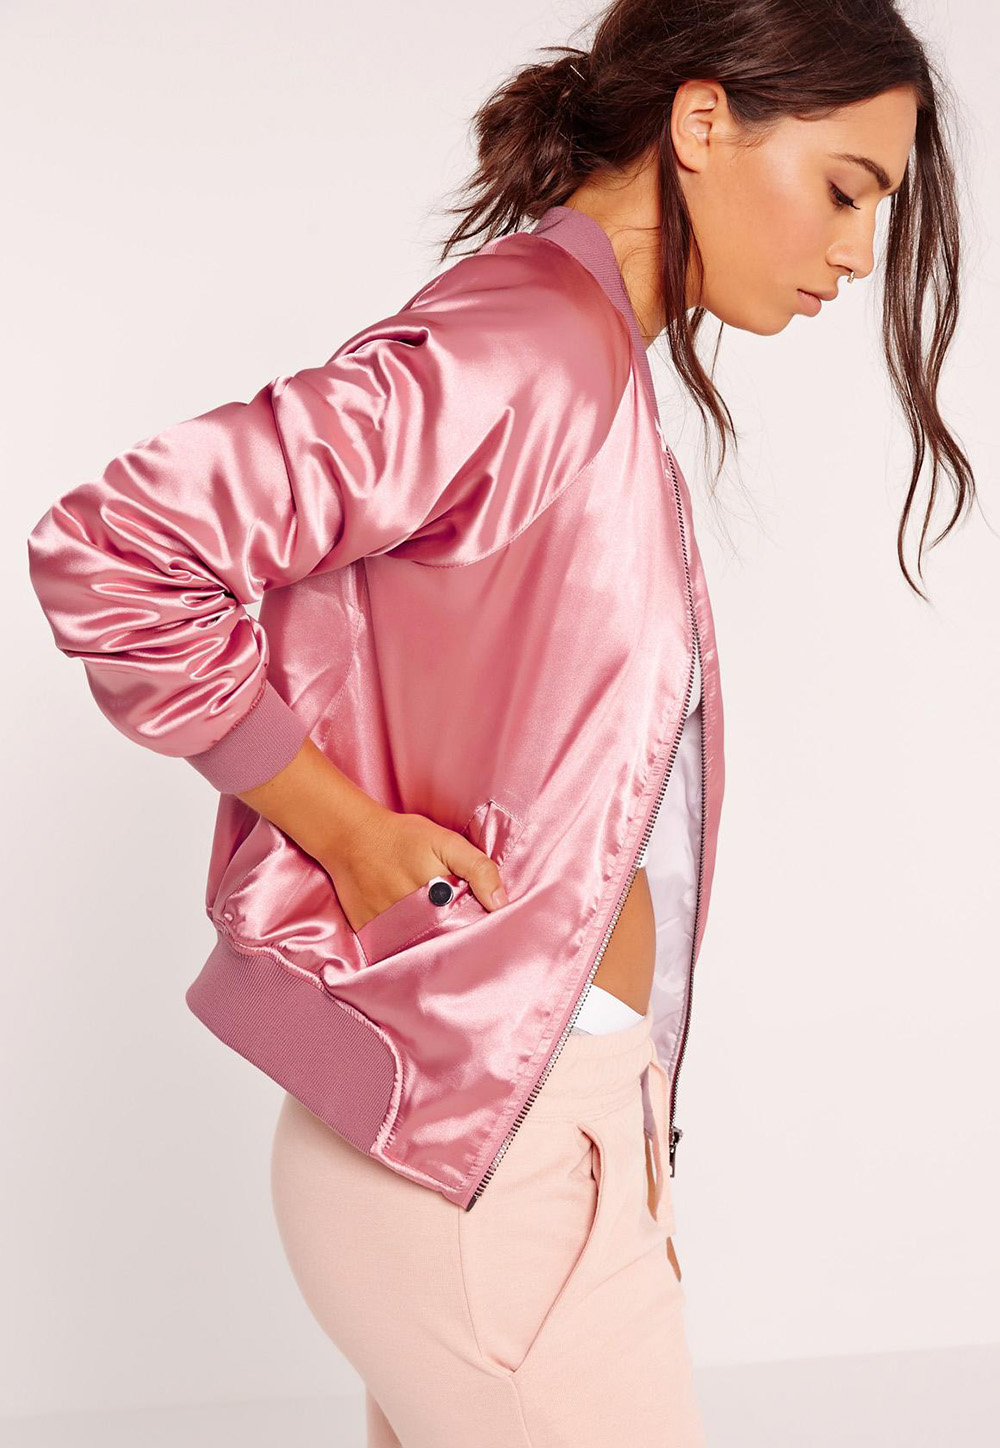 Missguided Premium Satin Bomber Jacket Pink | Valentine's Day Gift Guide